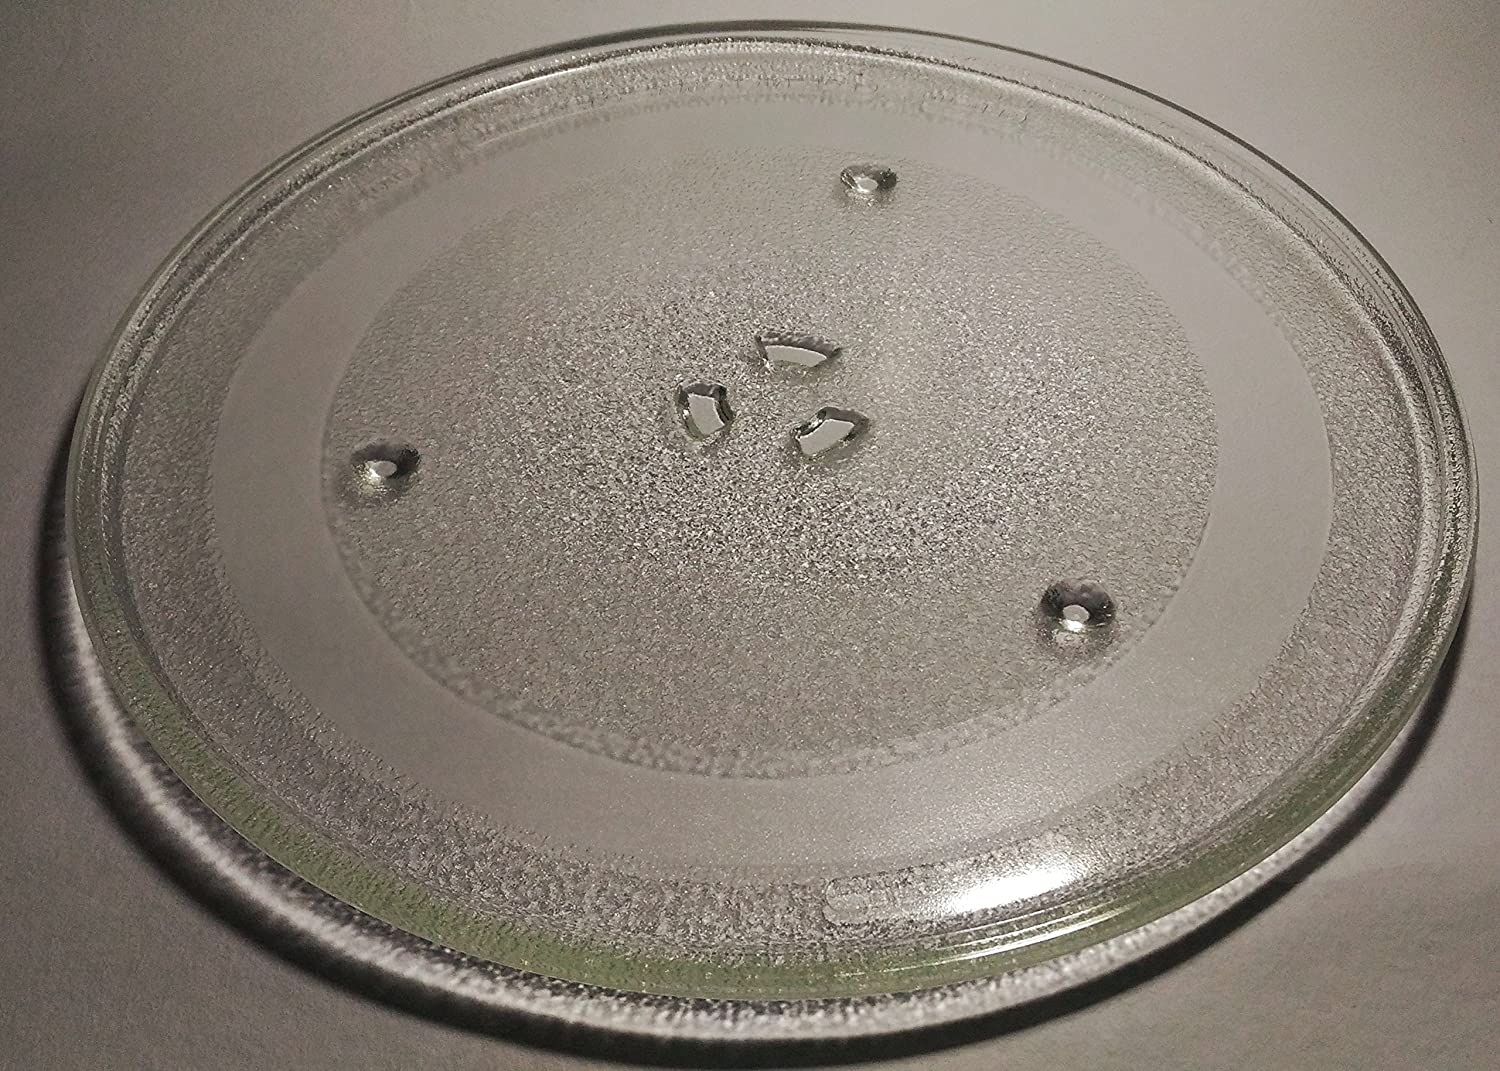 LG / Goldstar Microwave Glass Turntable Tray / Plate 12 3/4 Inch LG Electronics 1B71961